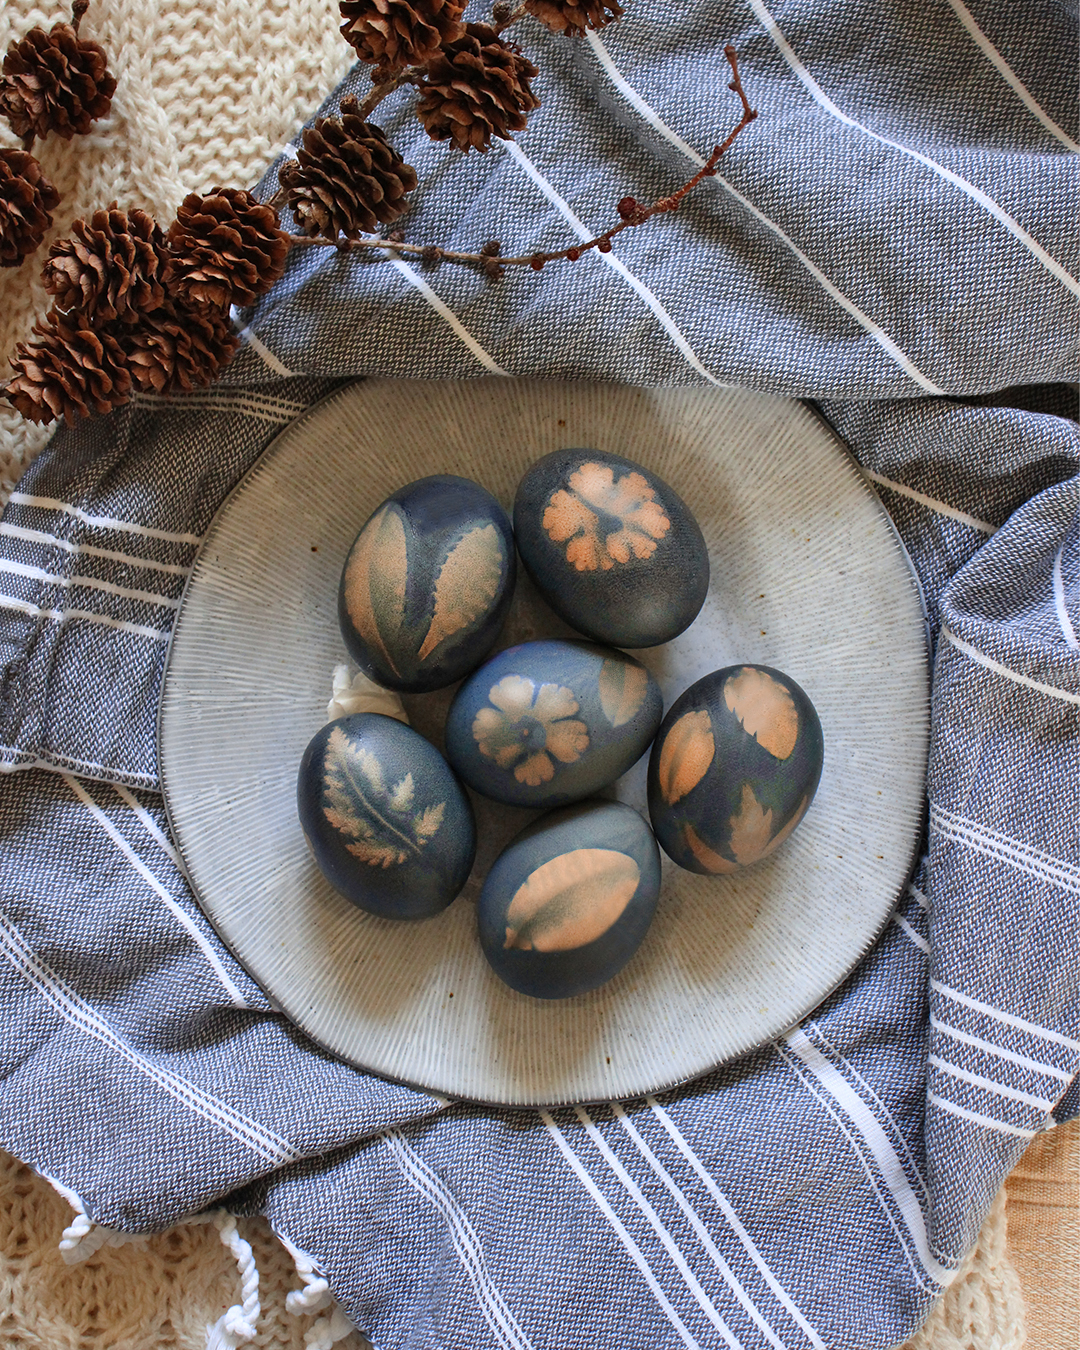 red-cabbage-naturally-dyed-eggs-easter-craft-nancy-straughan-blog.jpg